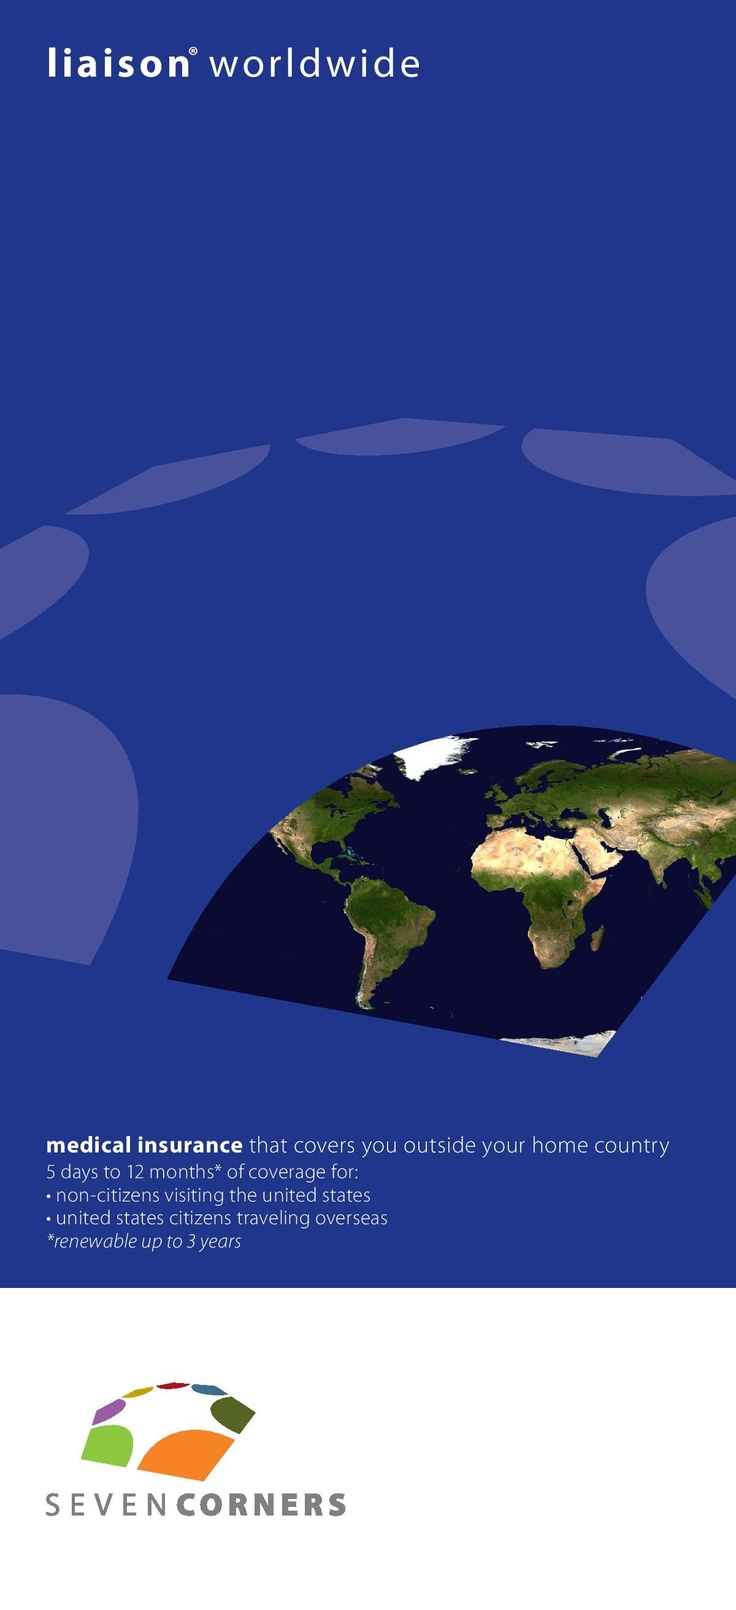 "Liaison Worldwide Insurance is a international #travel medical #insurance from @SevenCorners.com .  rated as ""A+"" by AM Best. The plan provides coverage for trips between 5 days to 3 years. The coverage begins immediately after you buy the plan to provide you with comprehensive travel medical coverage for your trip outside your home country.  Read reviews @ http://www.visitorscoverage.com/liaison-worldwide-insurance-reviews/"